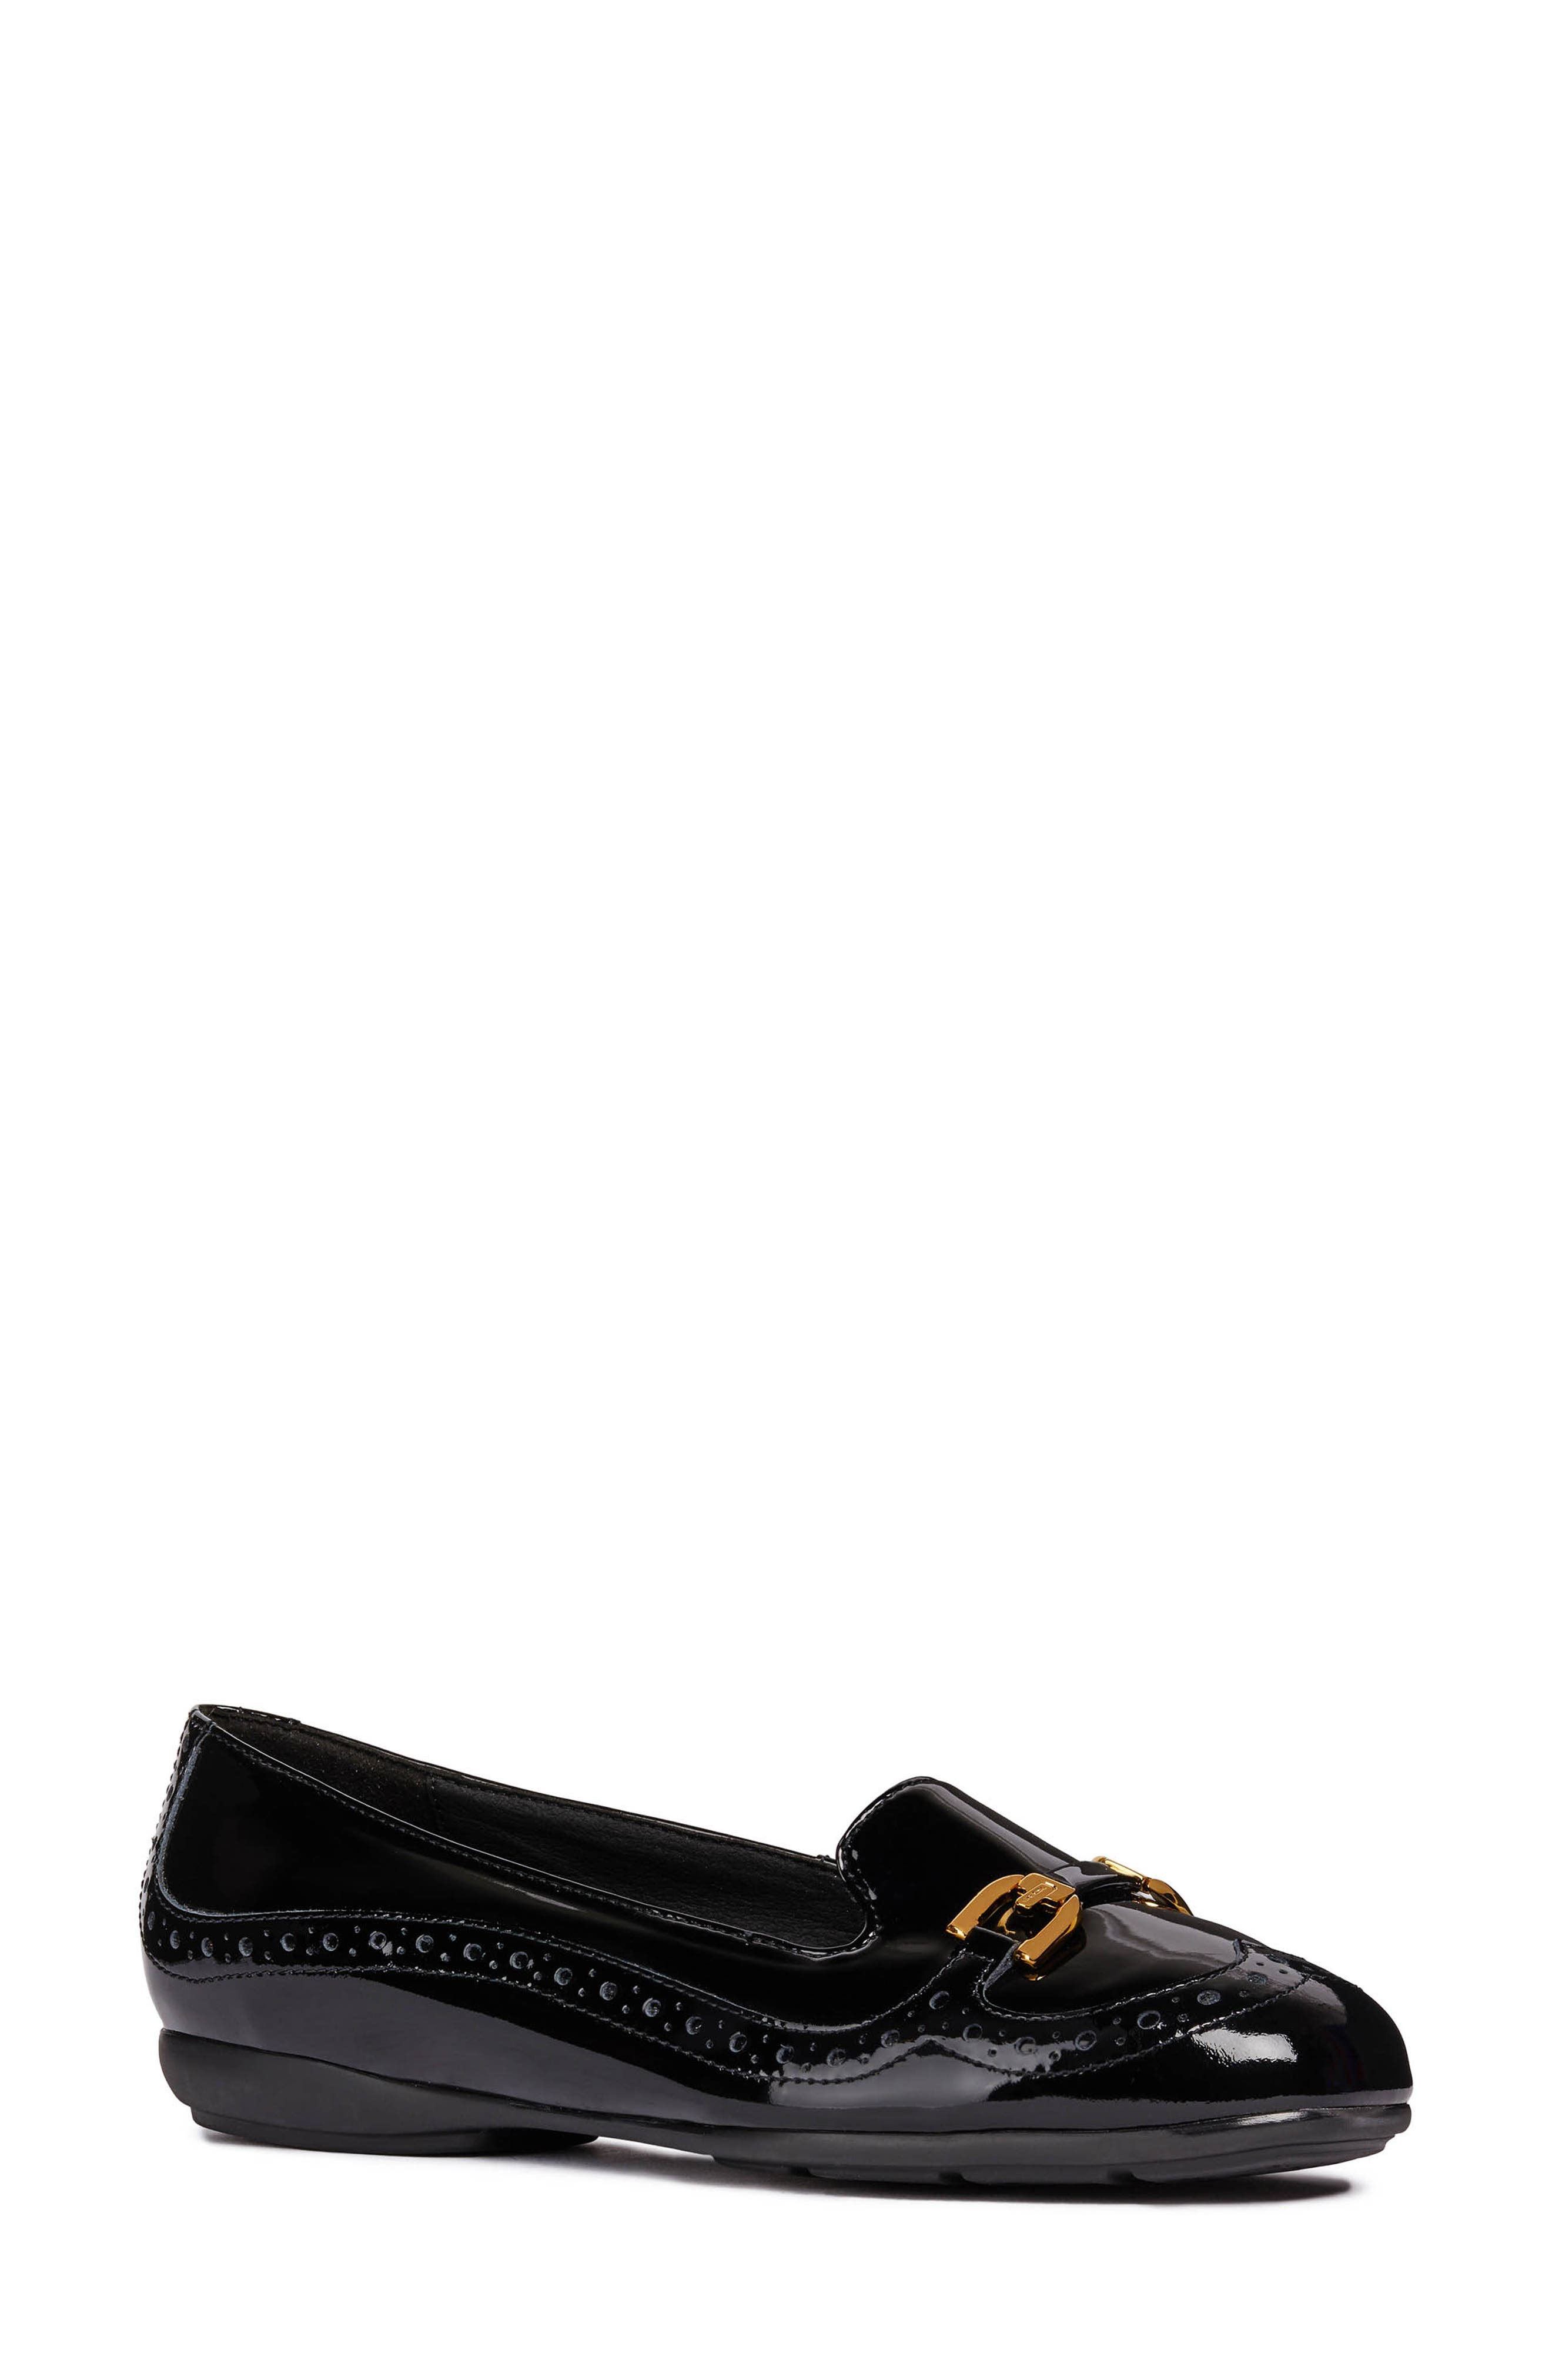 Annytah Loafer,                             Main thumbnail 1, color,                             BLACK FAUX PATENT LEATHER